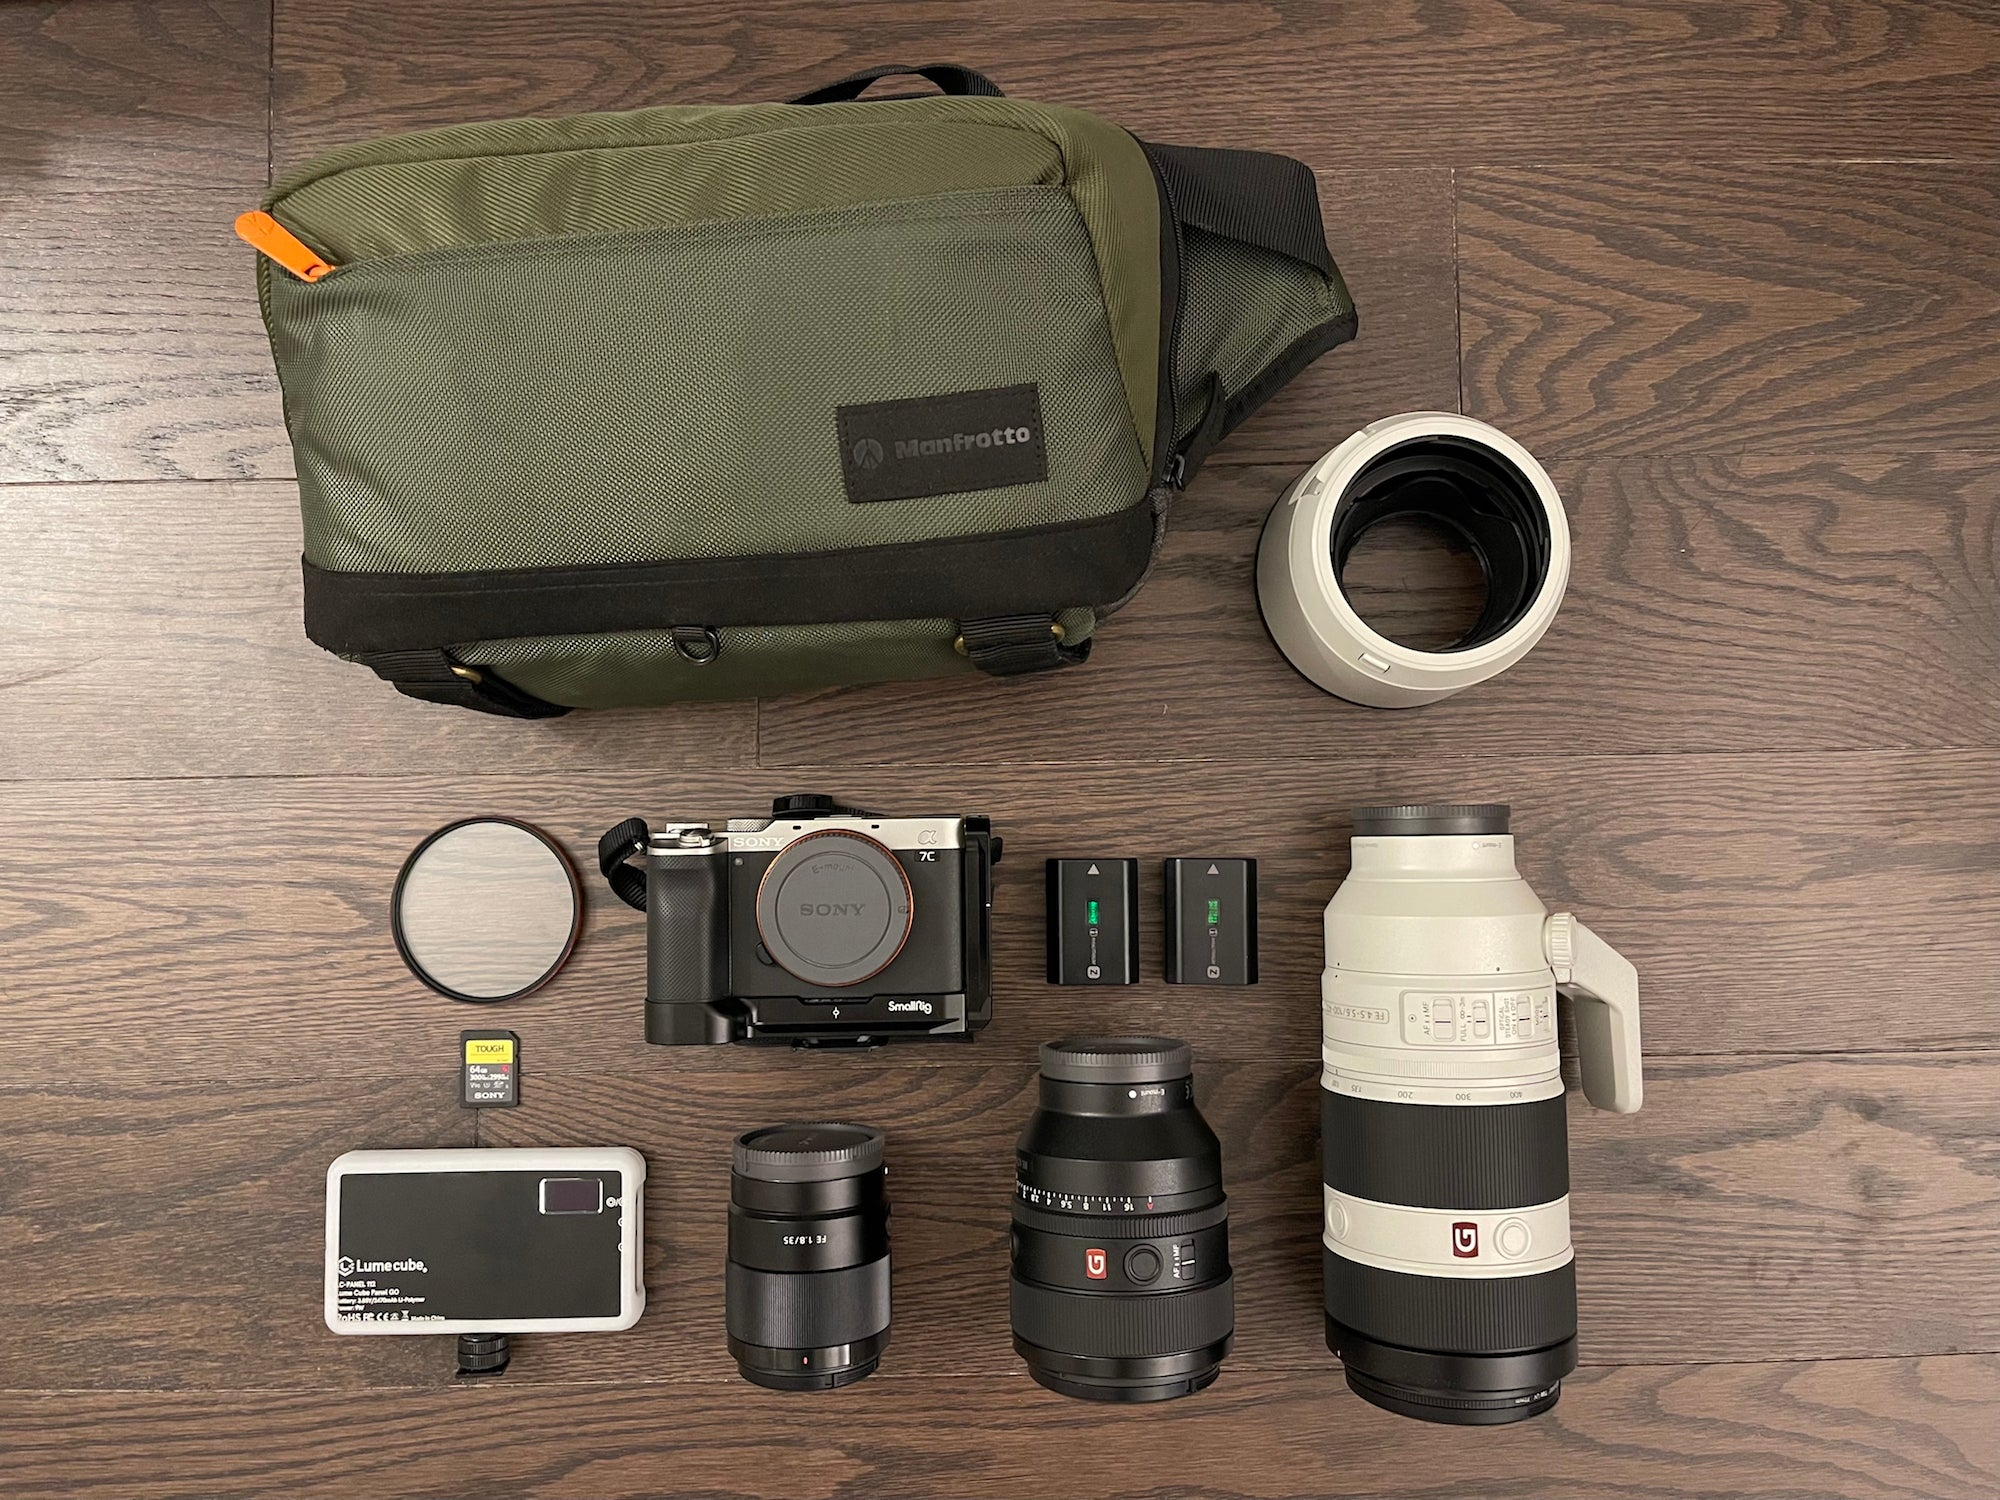 Quentin Mui's gear for bold street photography and more